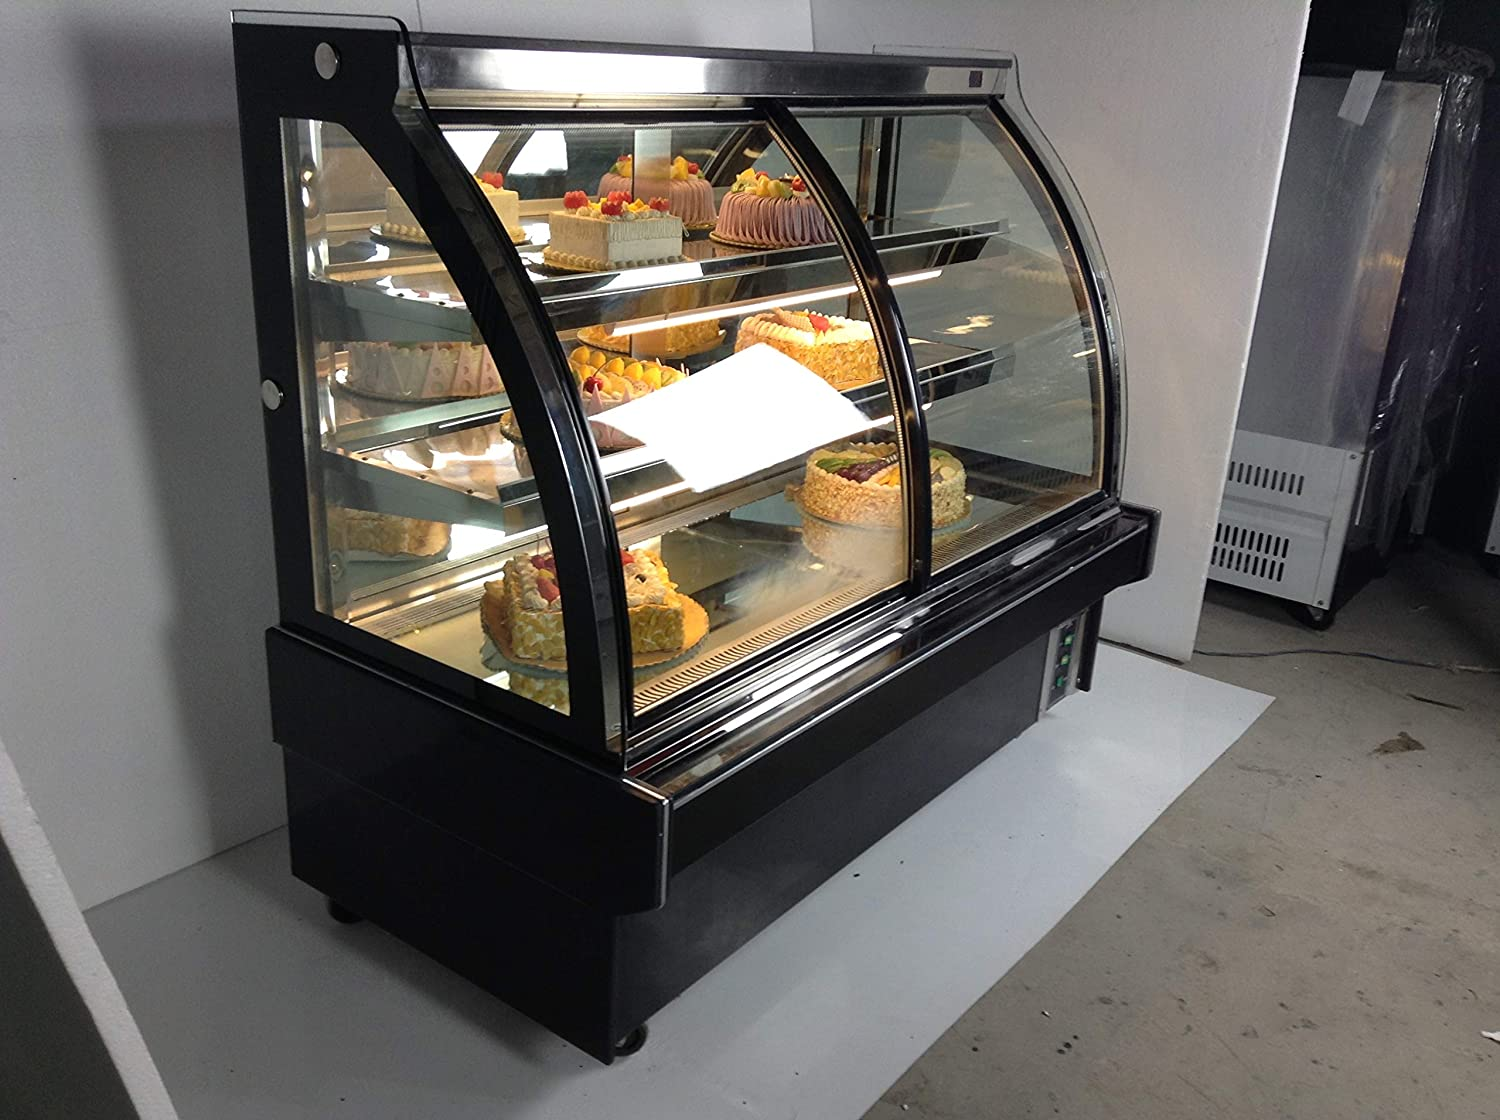 INTBUYING Commercial Display Case Cake Showcas Weekly update 220V Refrigerator Max 87% OFF